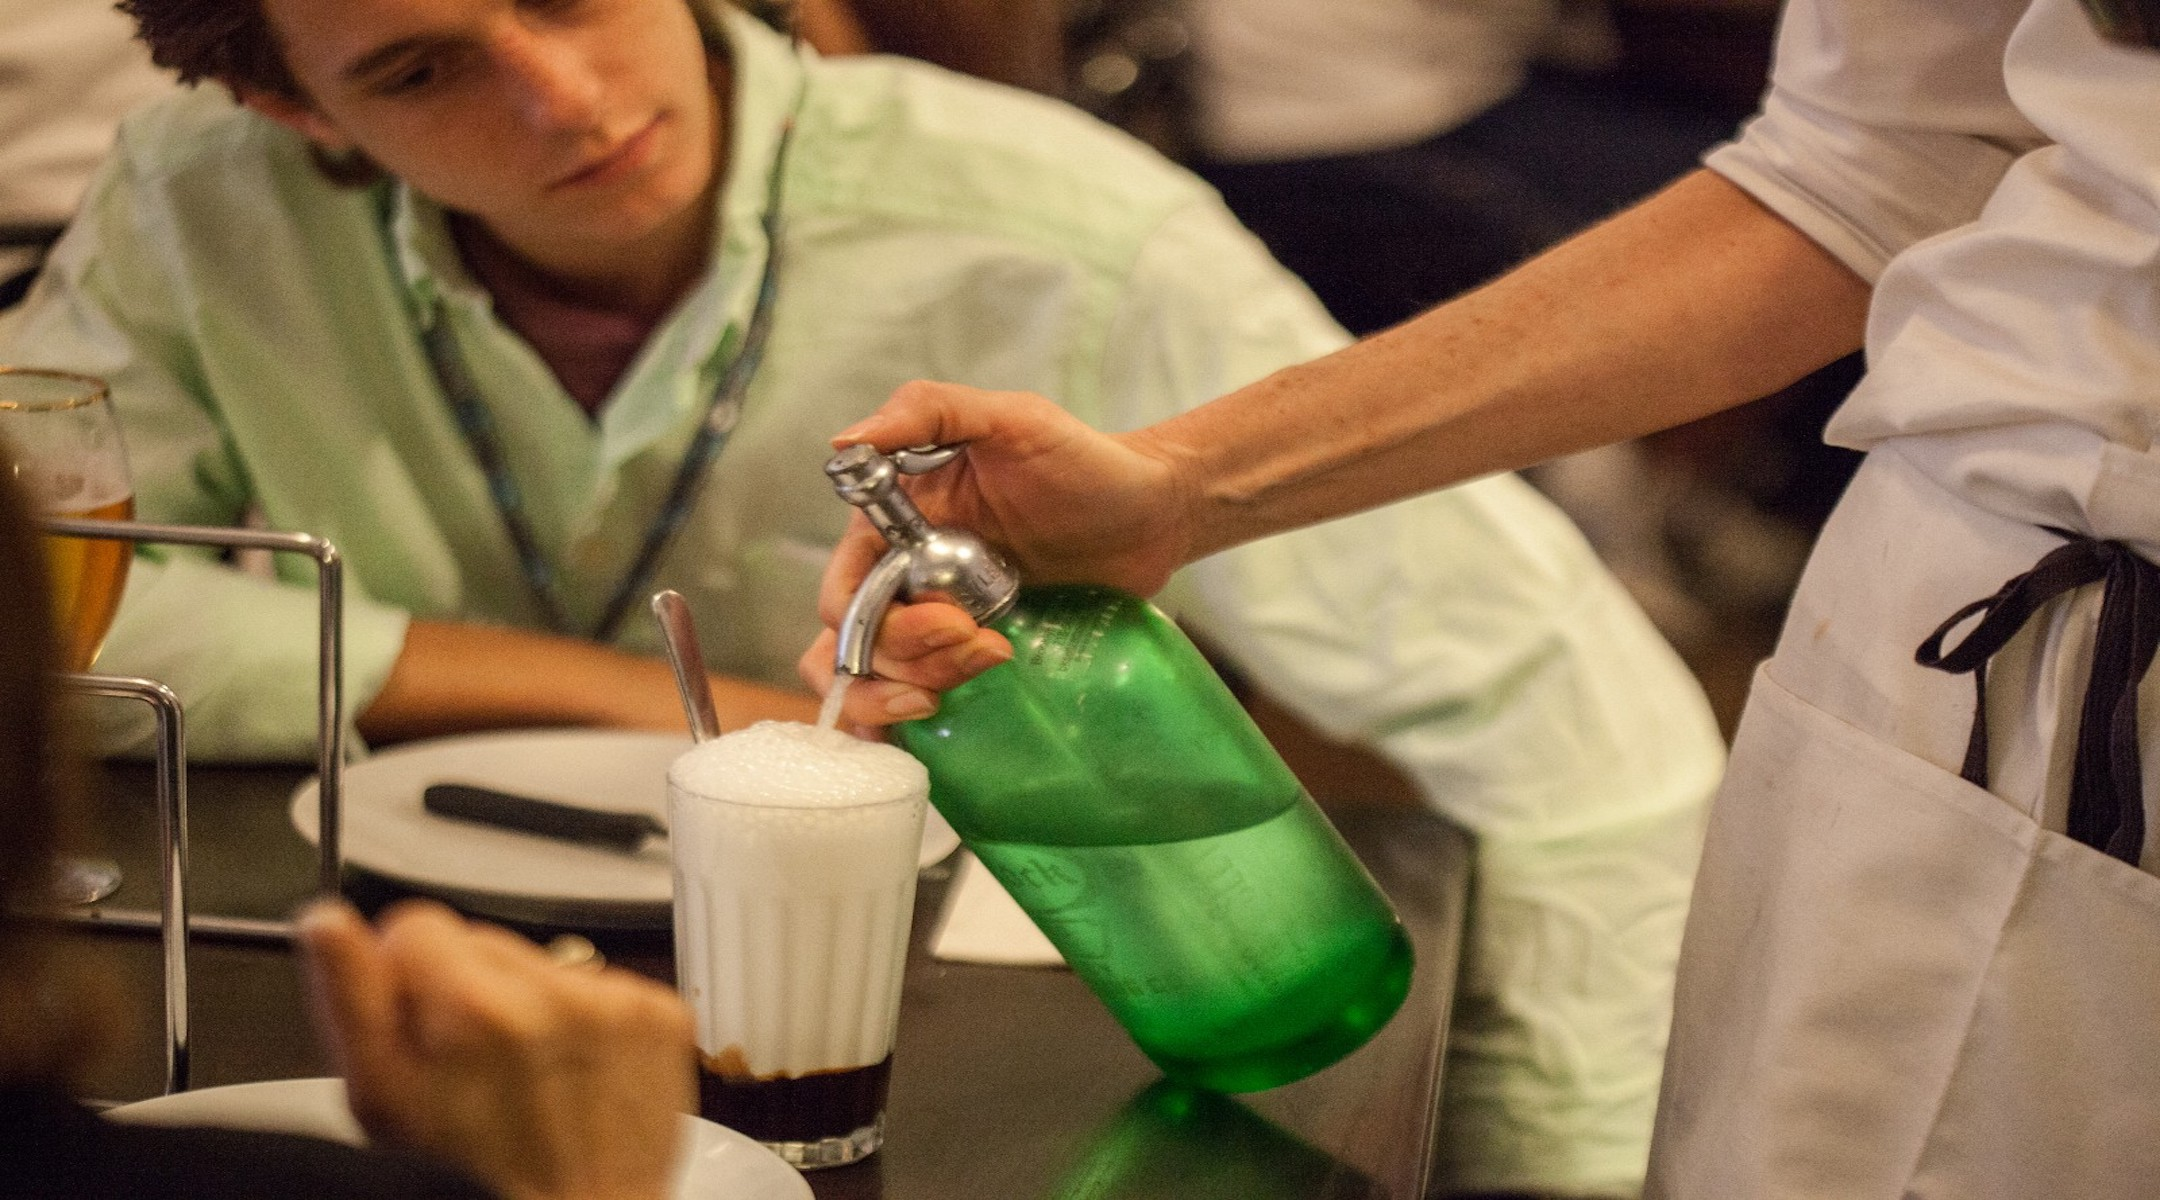 What is an egg cream and why is it so Jewish?